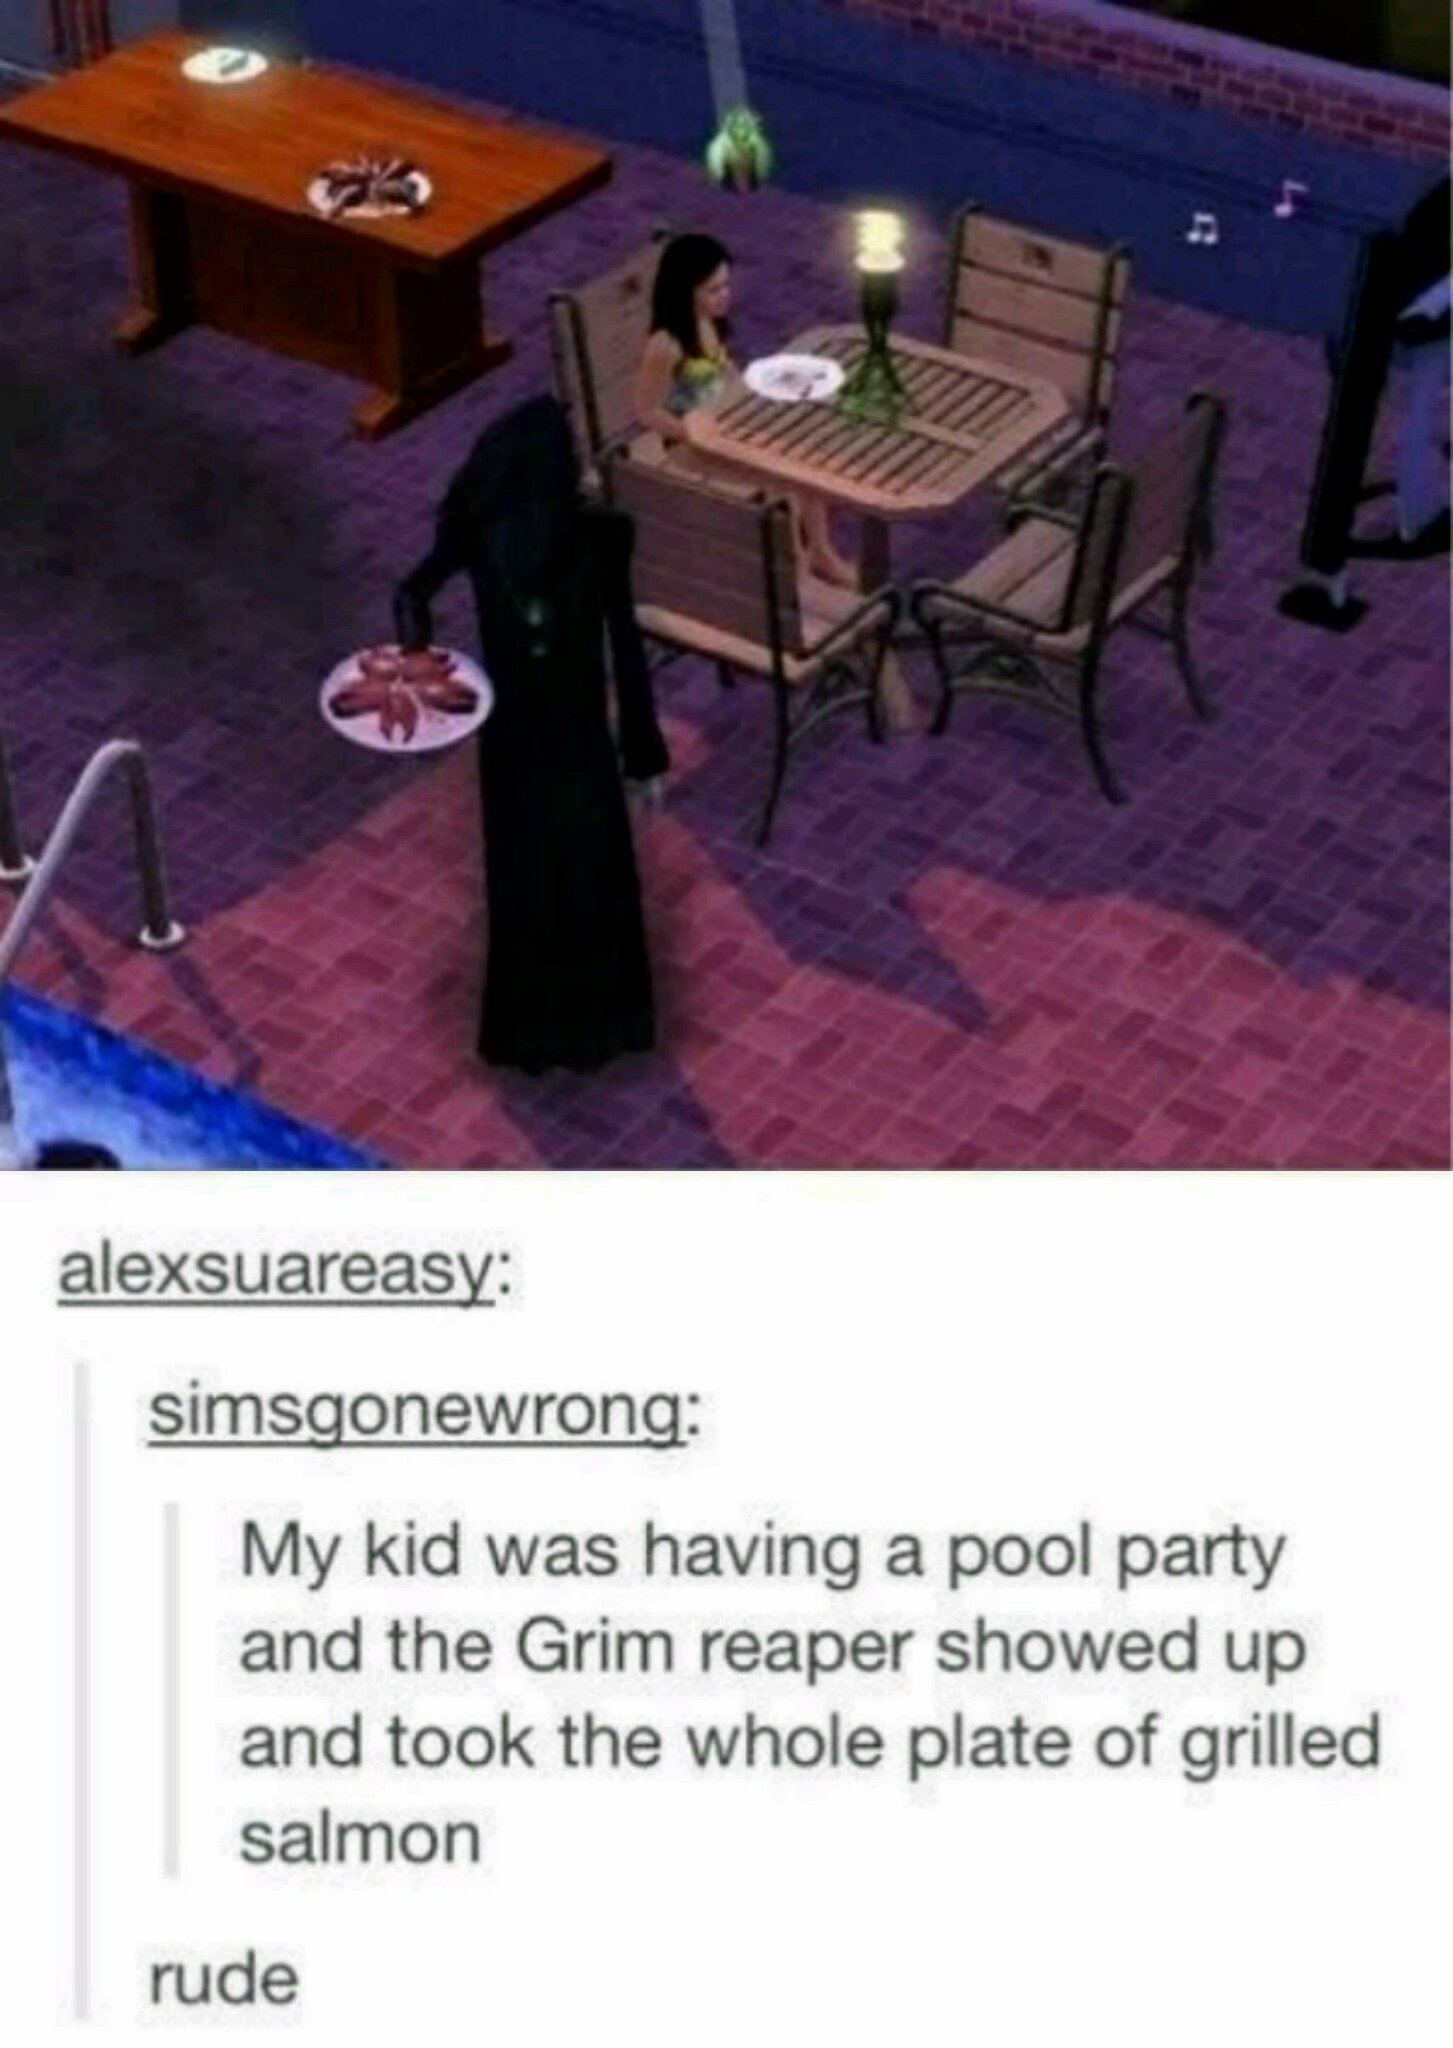 Don't be rude like the Grim Reaper - meme